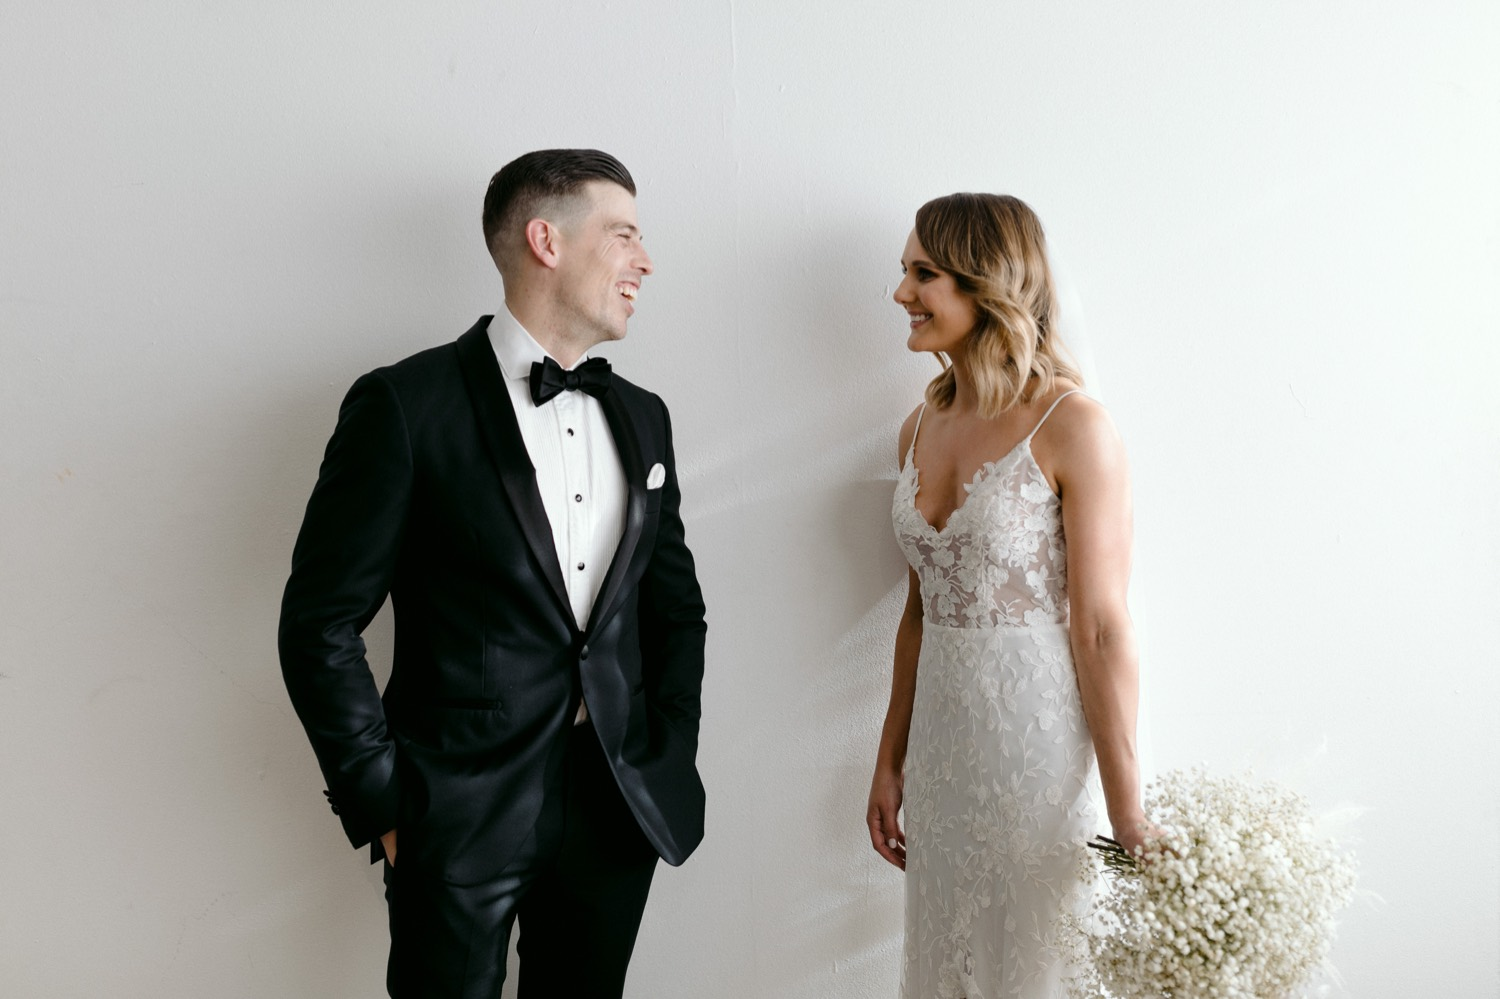 portrait of the bride and groom in black tie laughing